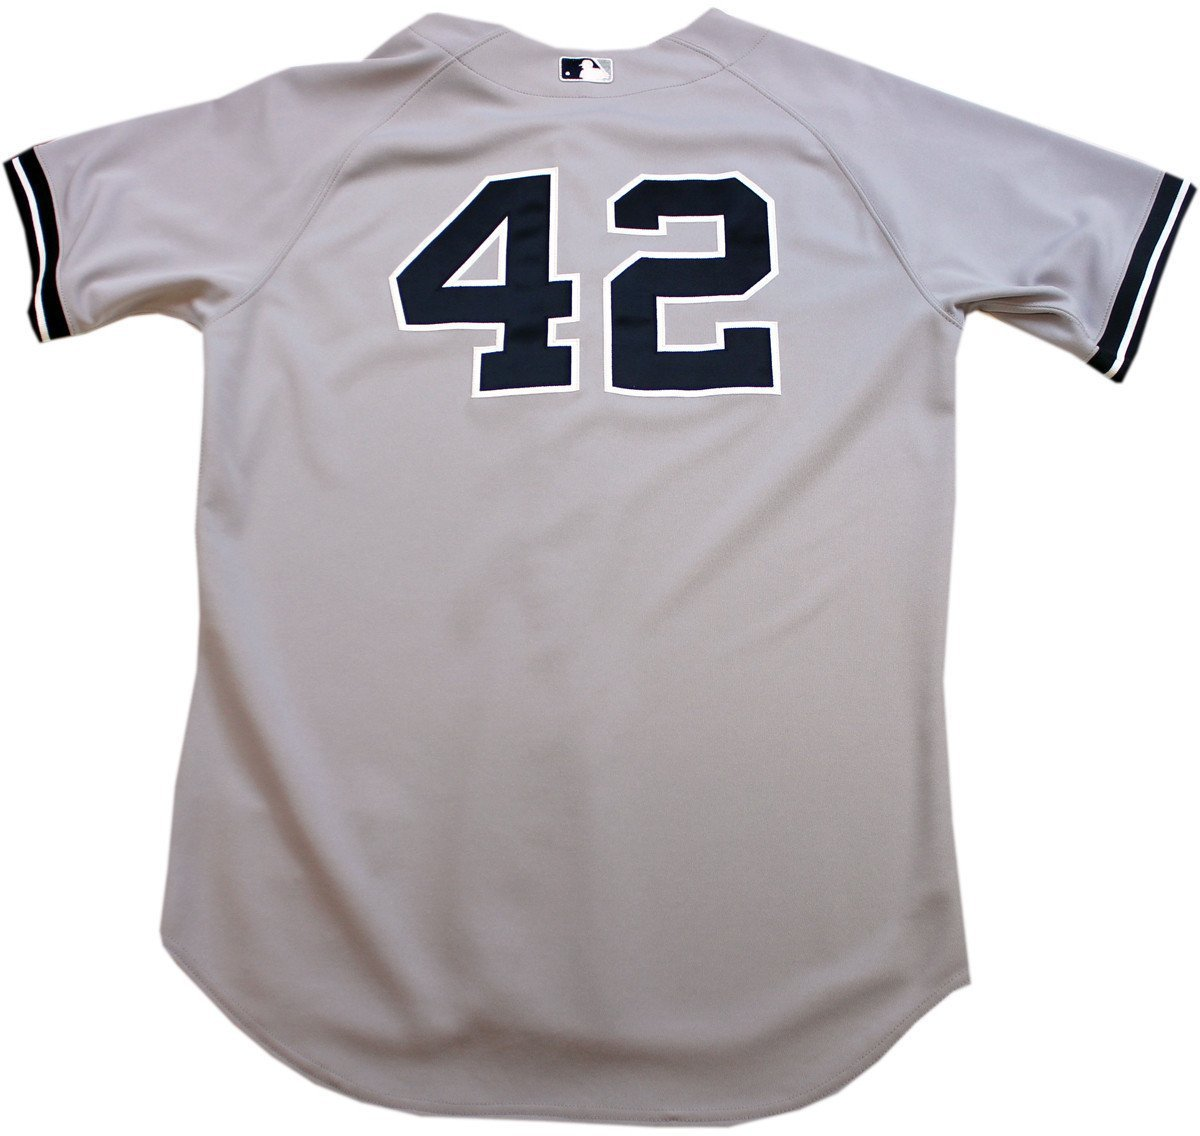 finest selection a0cfb 53008 Mariano Rivera Jersey - NY Yankees Game Worn #42 Grey Jersey ...